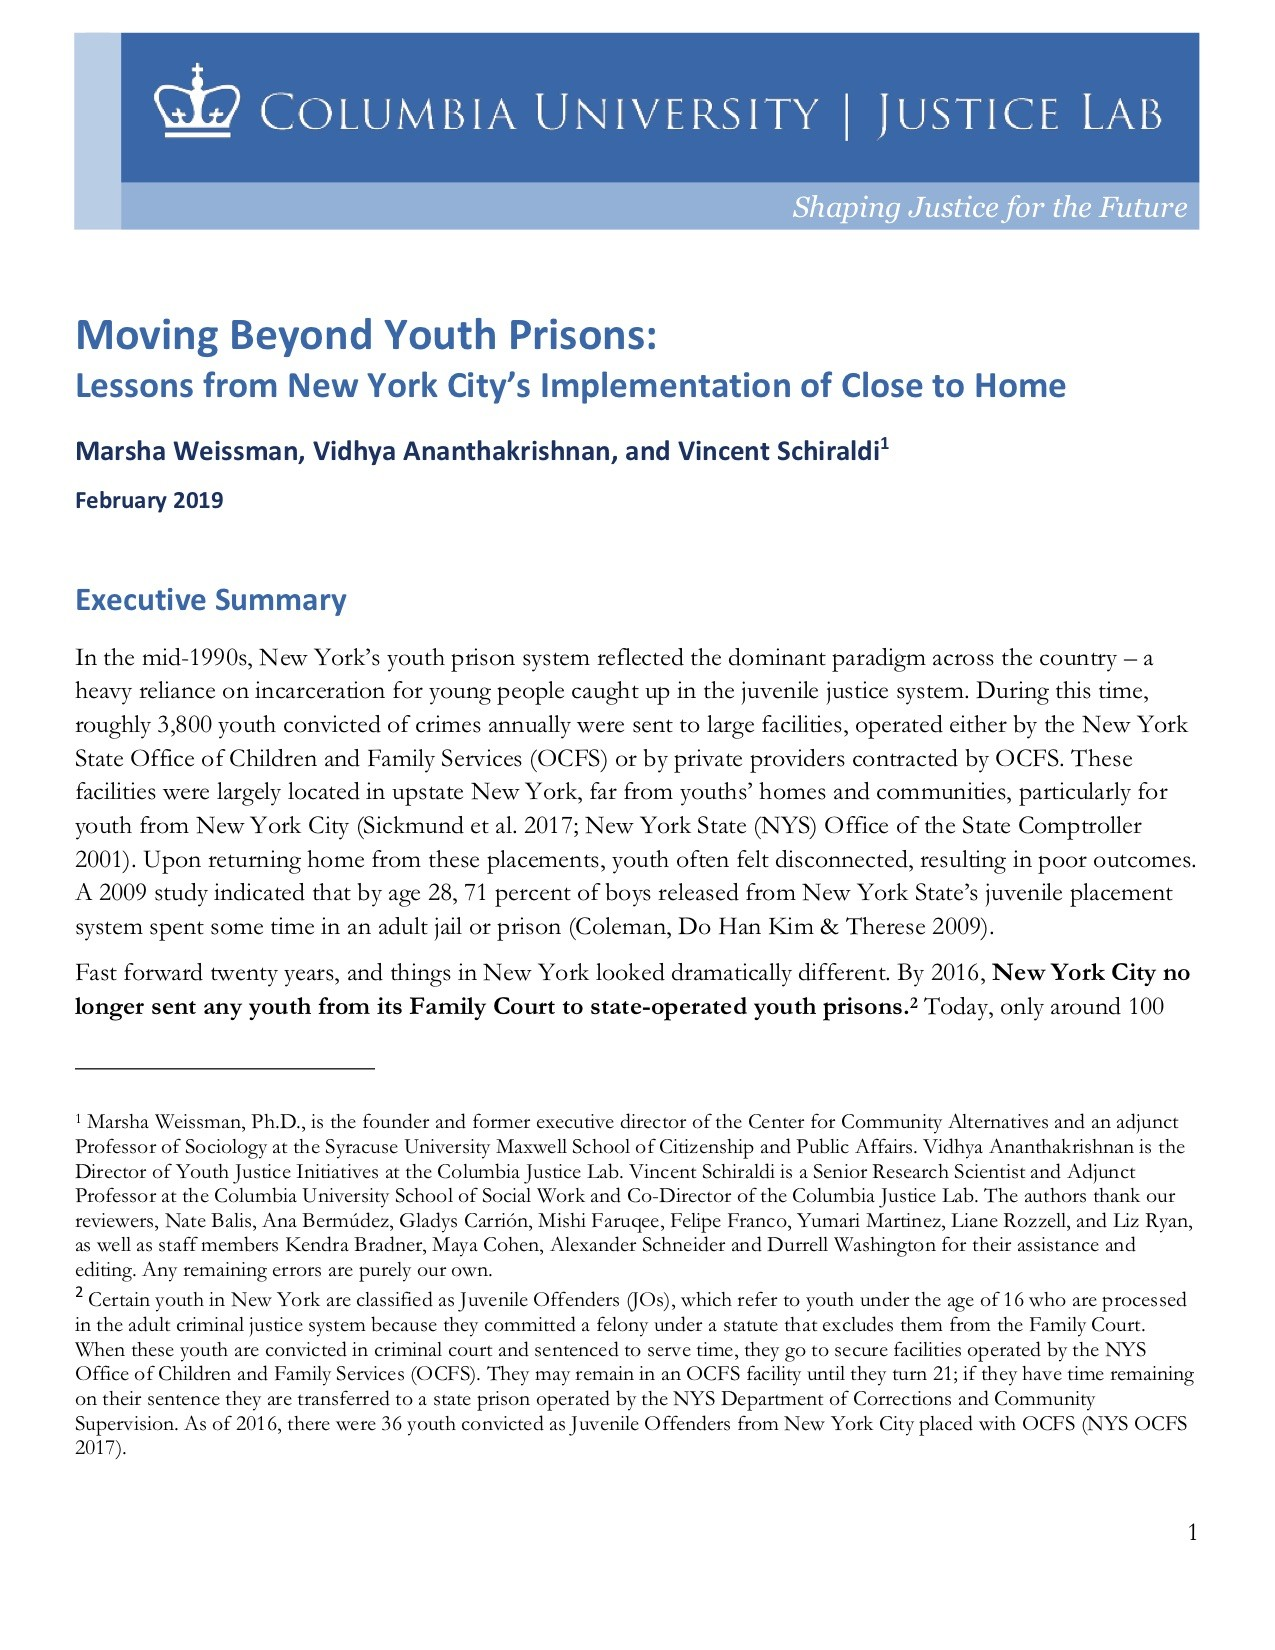 Moving Beyond Youth Prisons: Lessons from New York City's Implementation of Close to Home